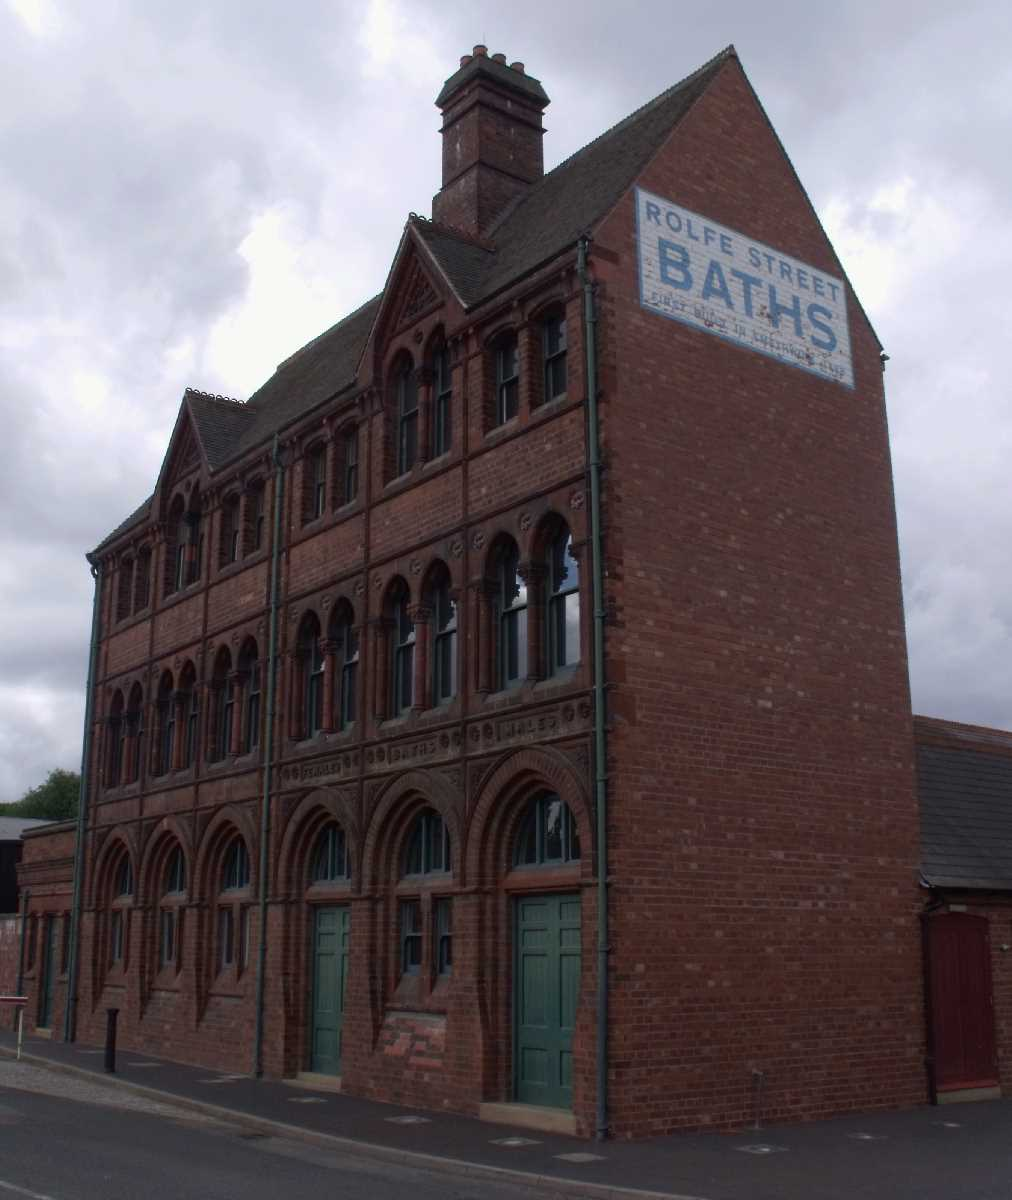 Outside the main entrance of the Black Country Living Museum